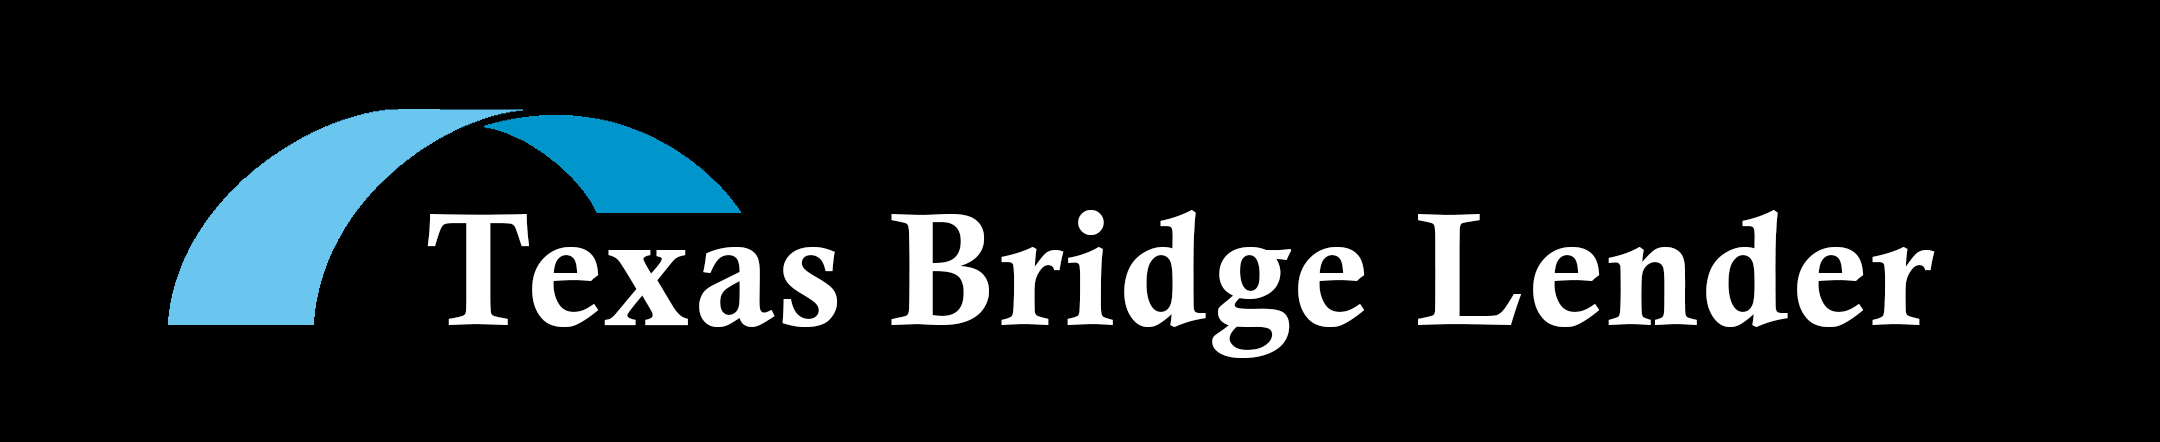 Texas Bridge Lender Logo